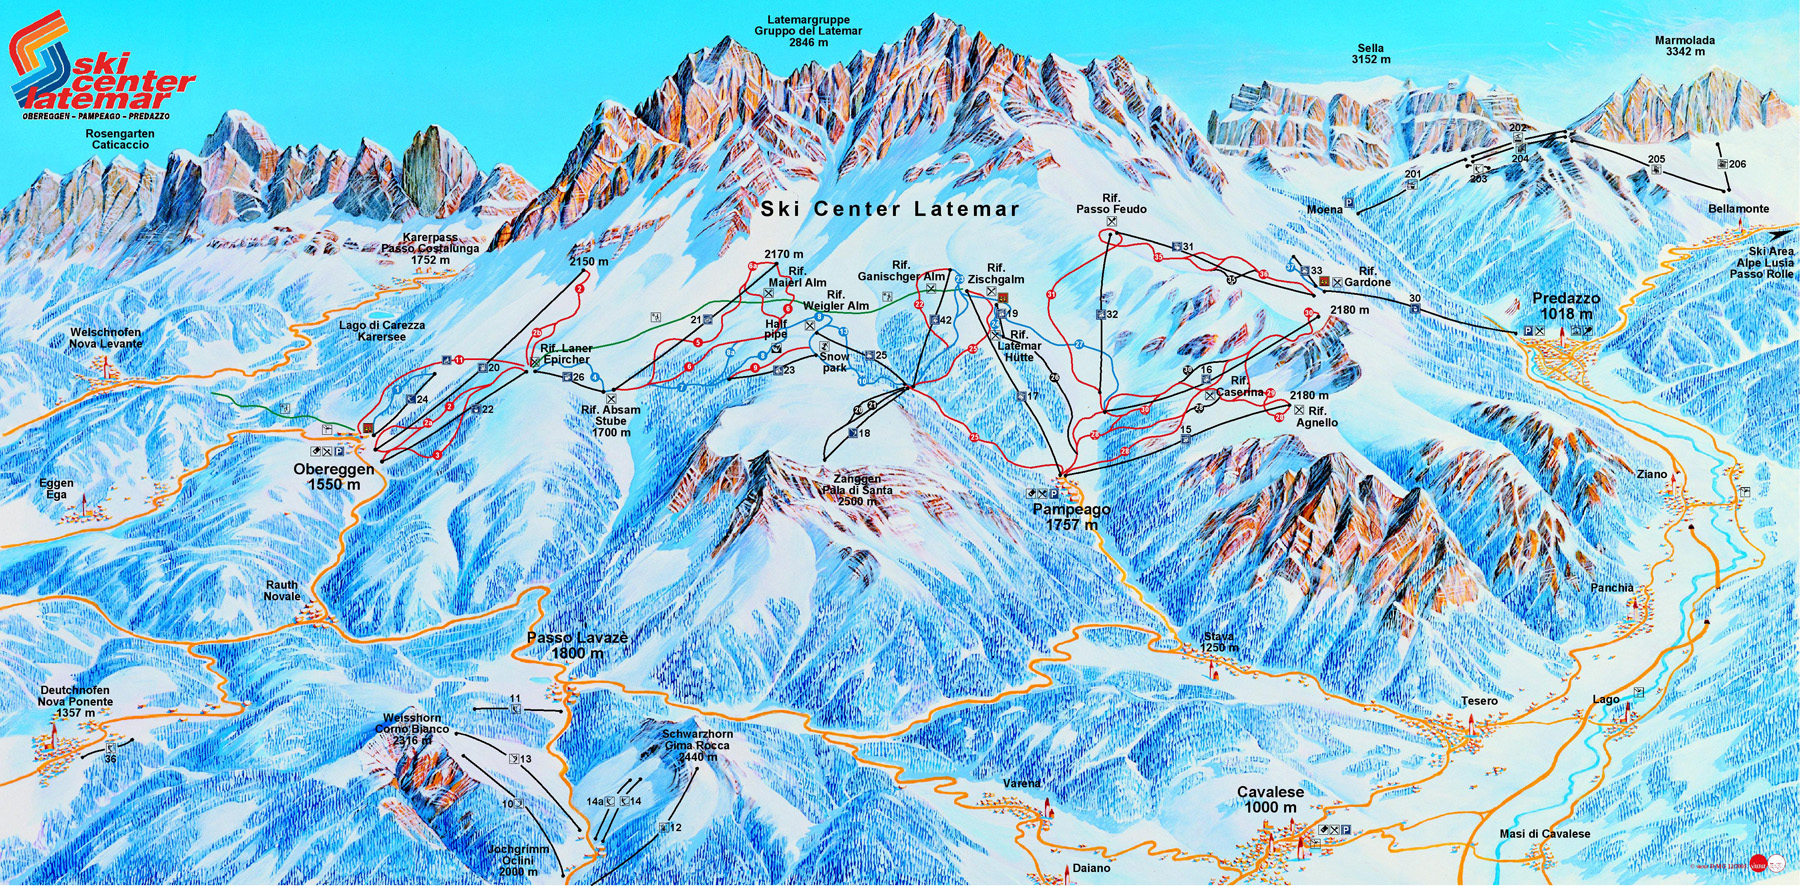 Latemar Val di Fiemme Obereggen Ski Center Latemar Ski Trail Map